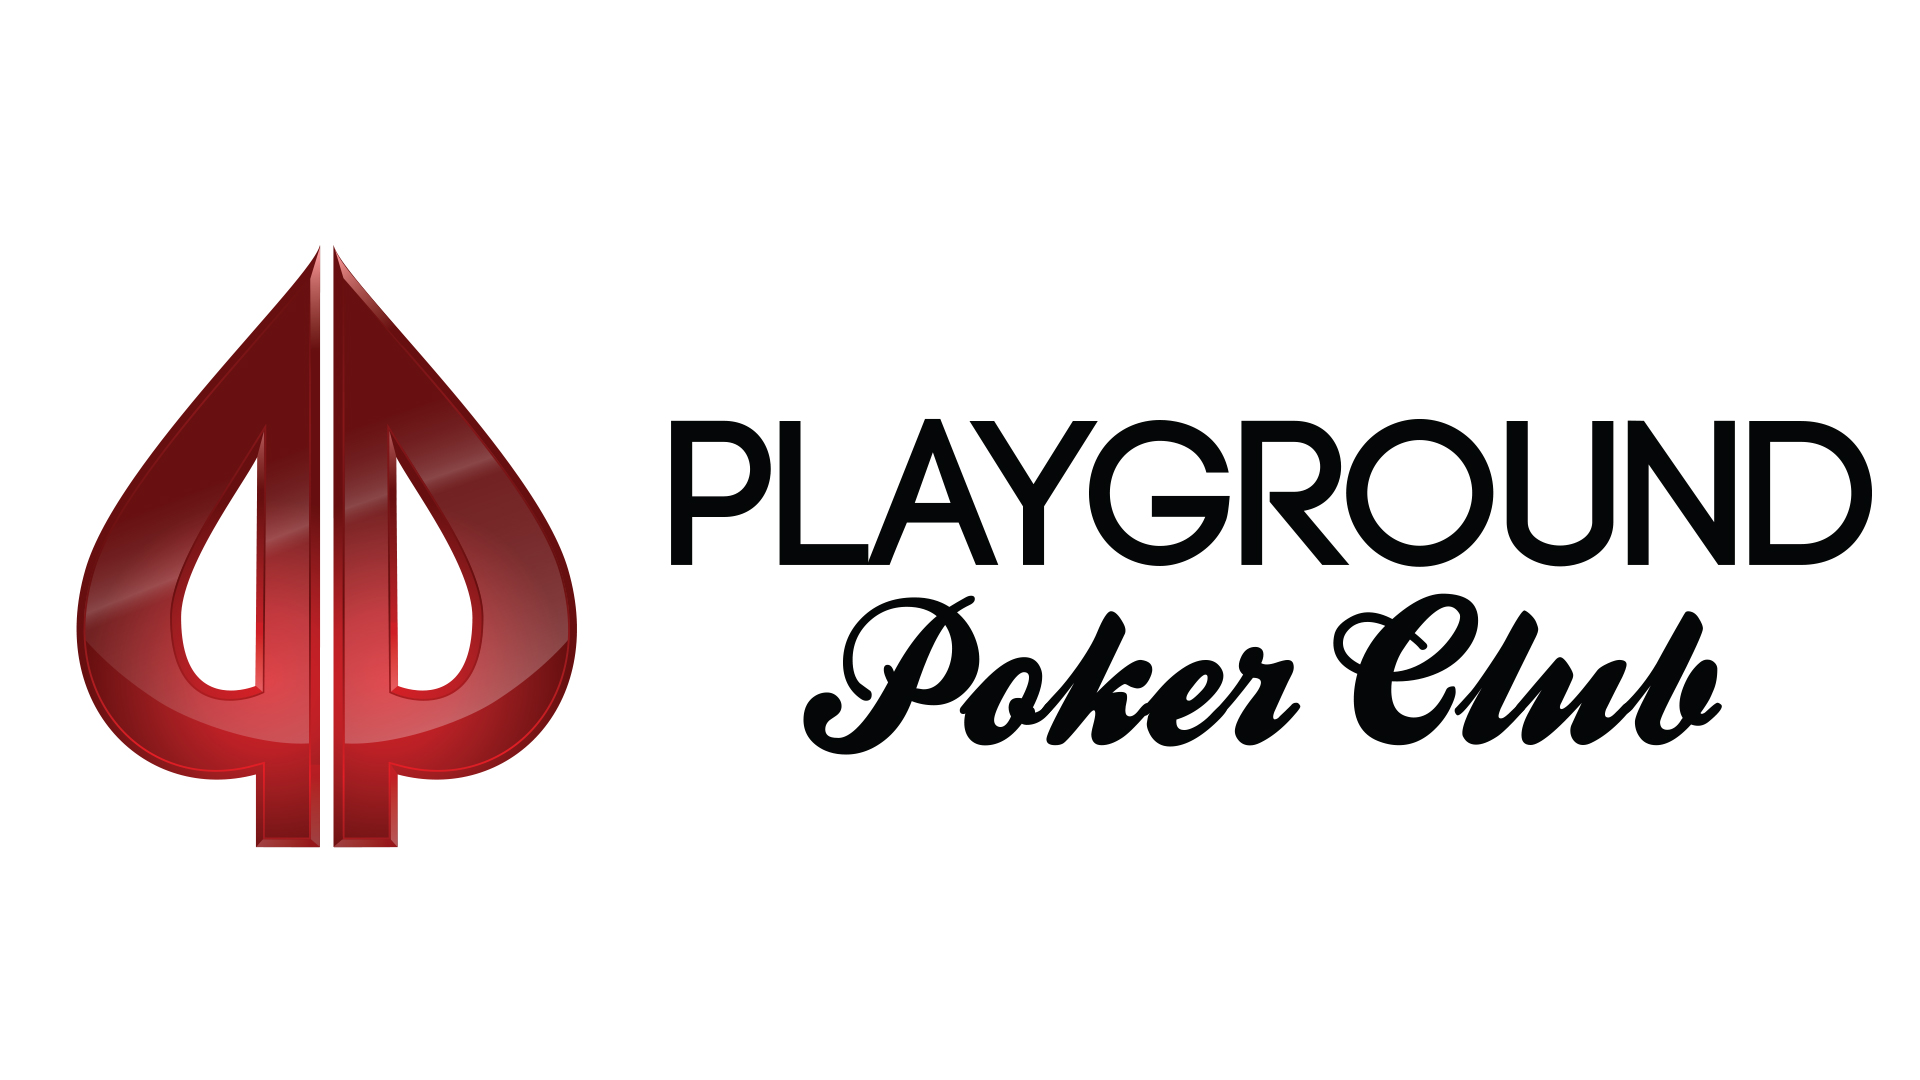 Playground Poker a smashing success on opening weekend